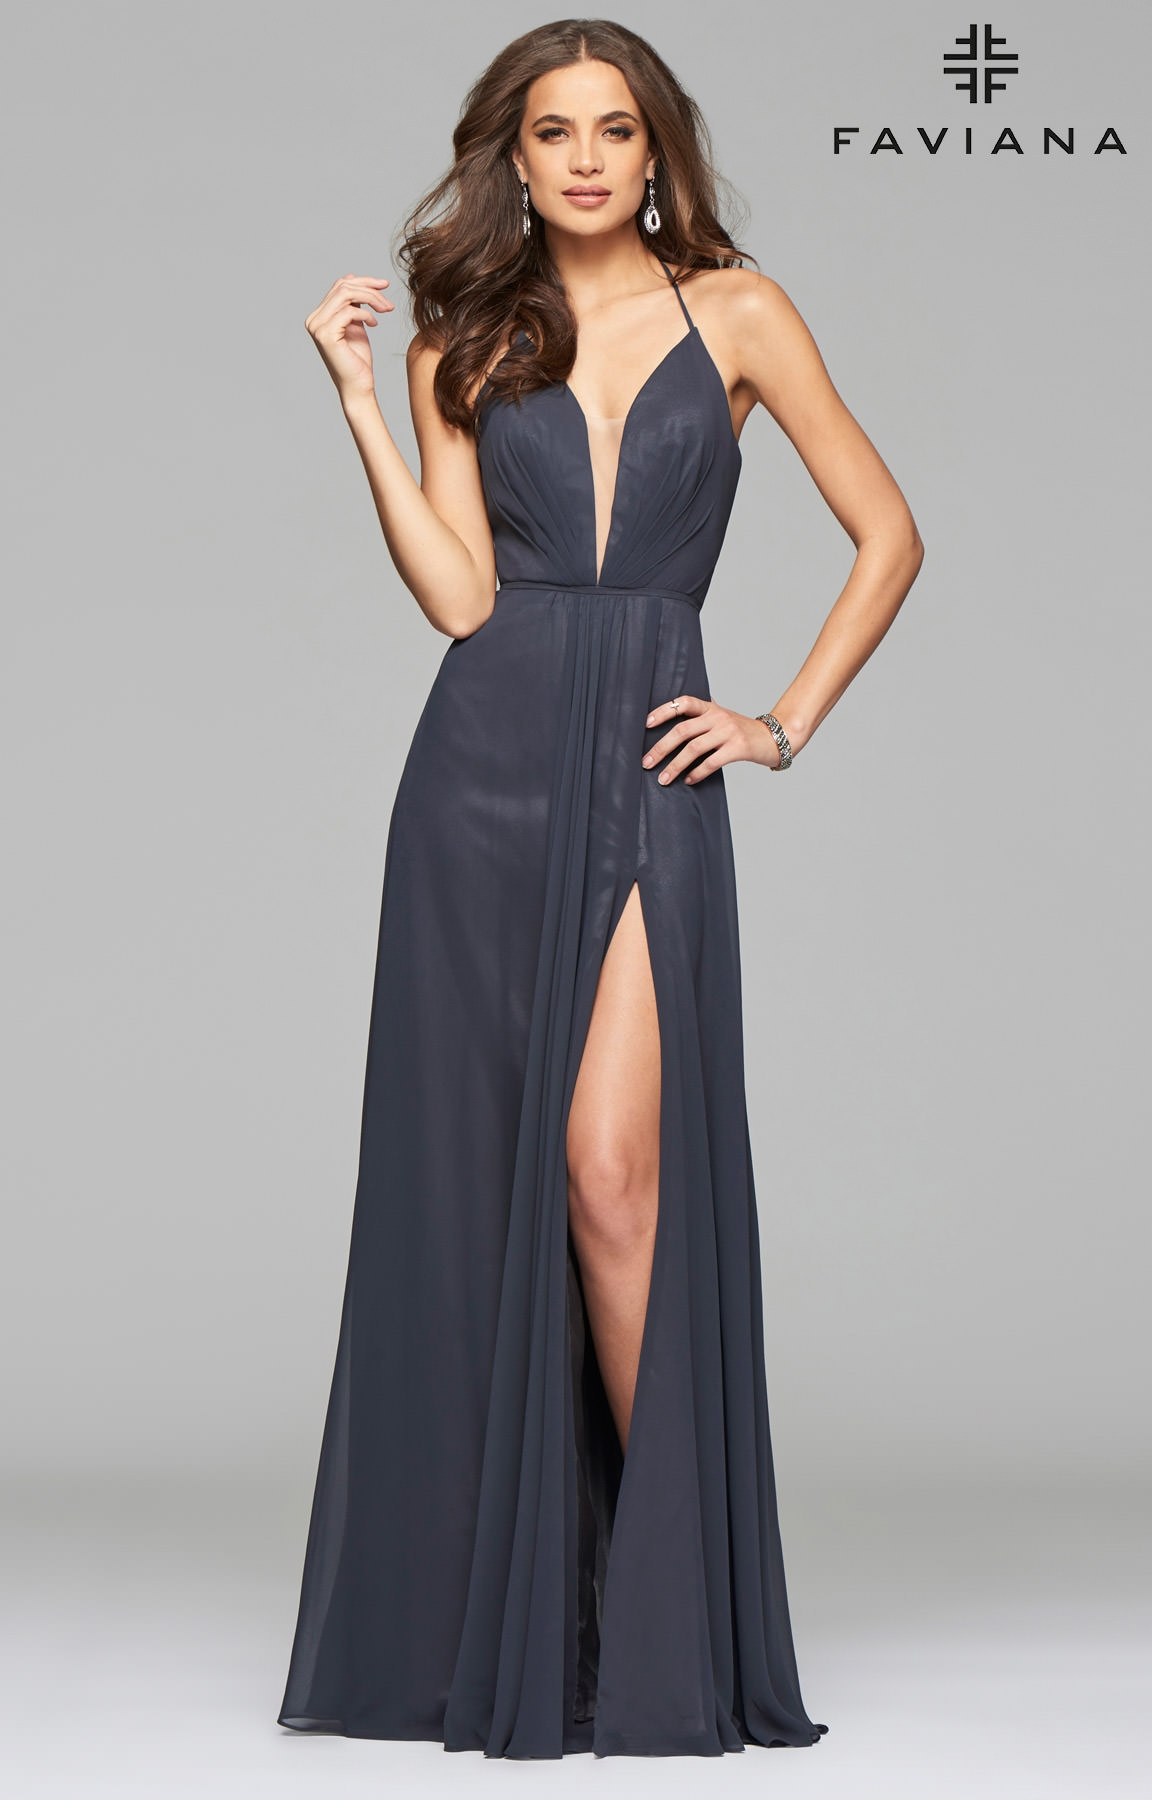 Faviana 7747 Open Corset Back Dress With Low Neckline